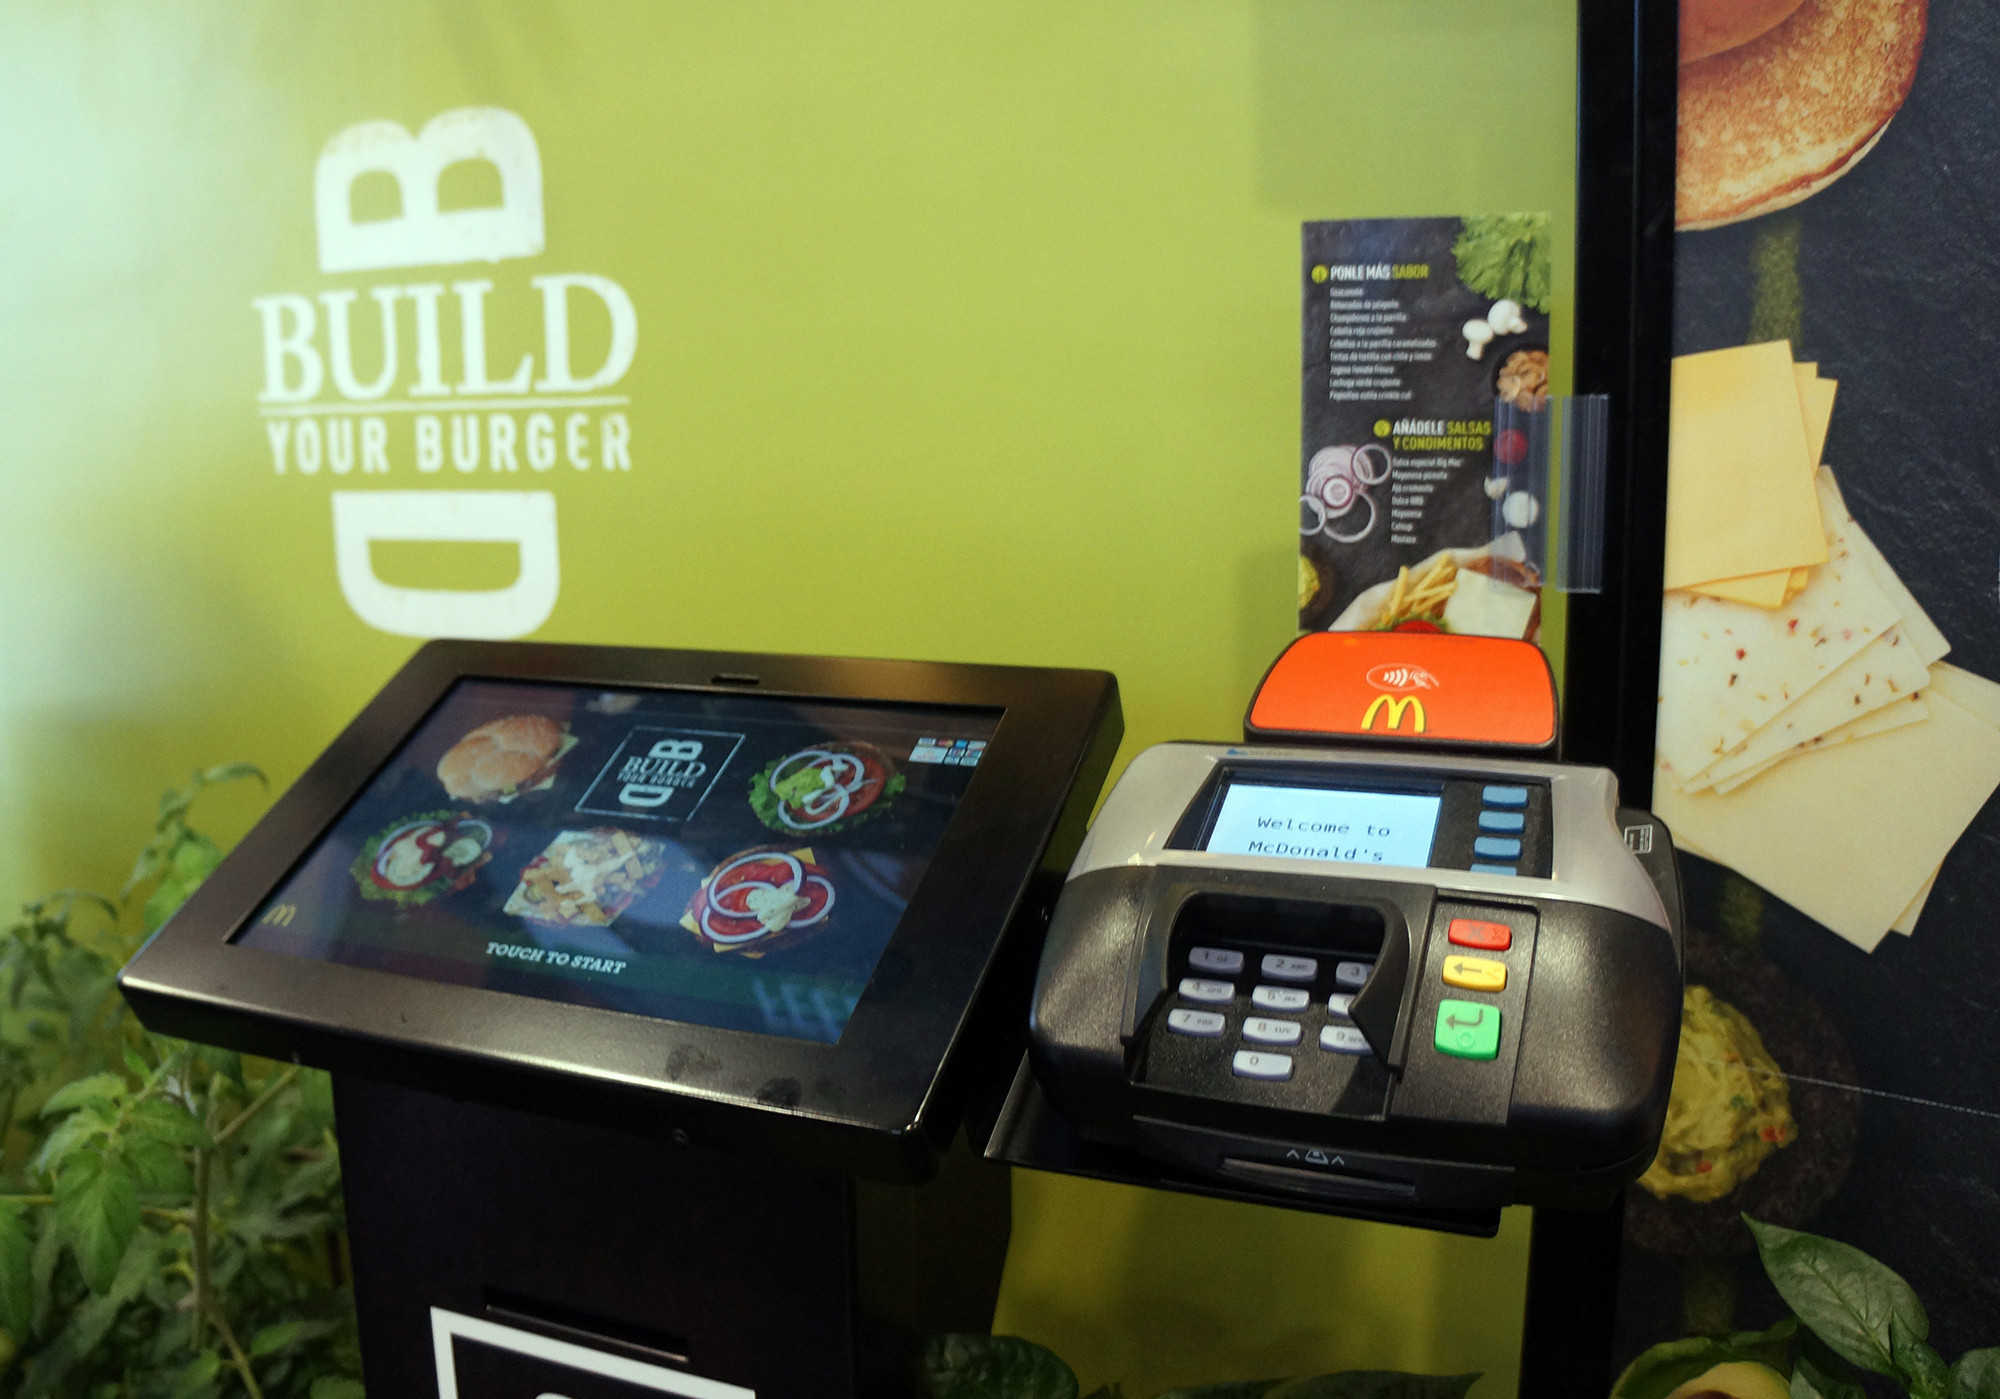 McDonald's expanding build-your-burger test in search of growth